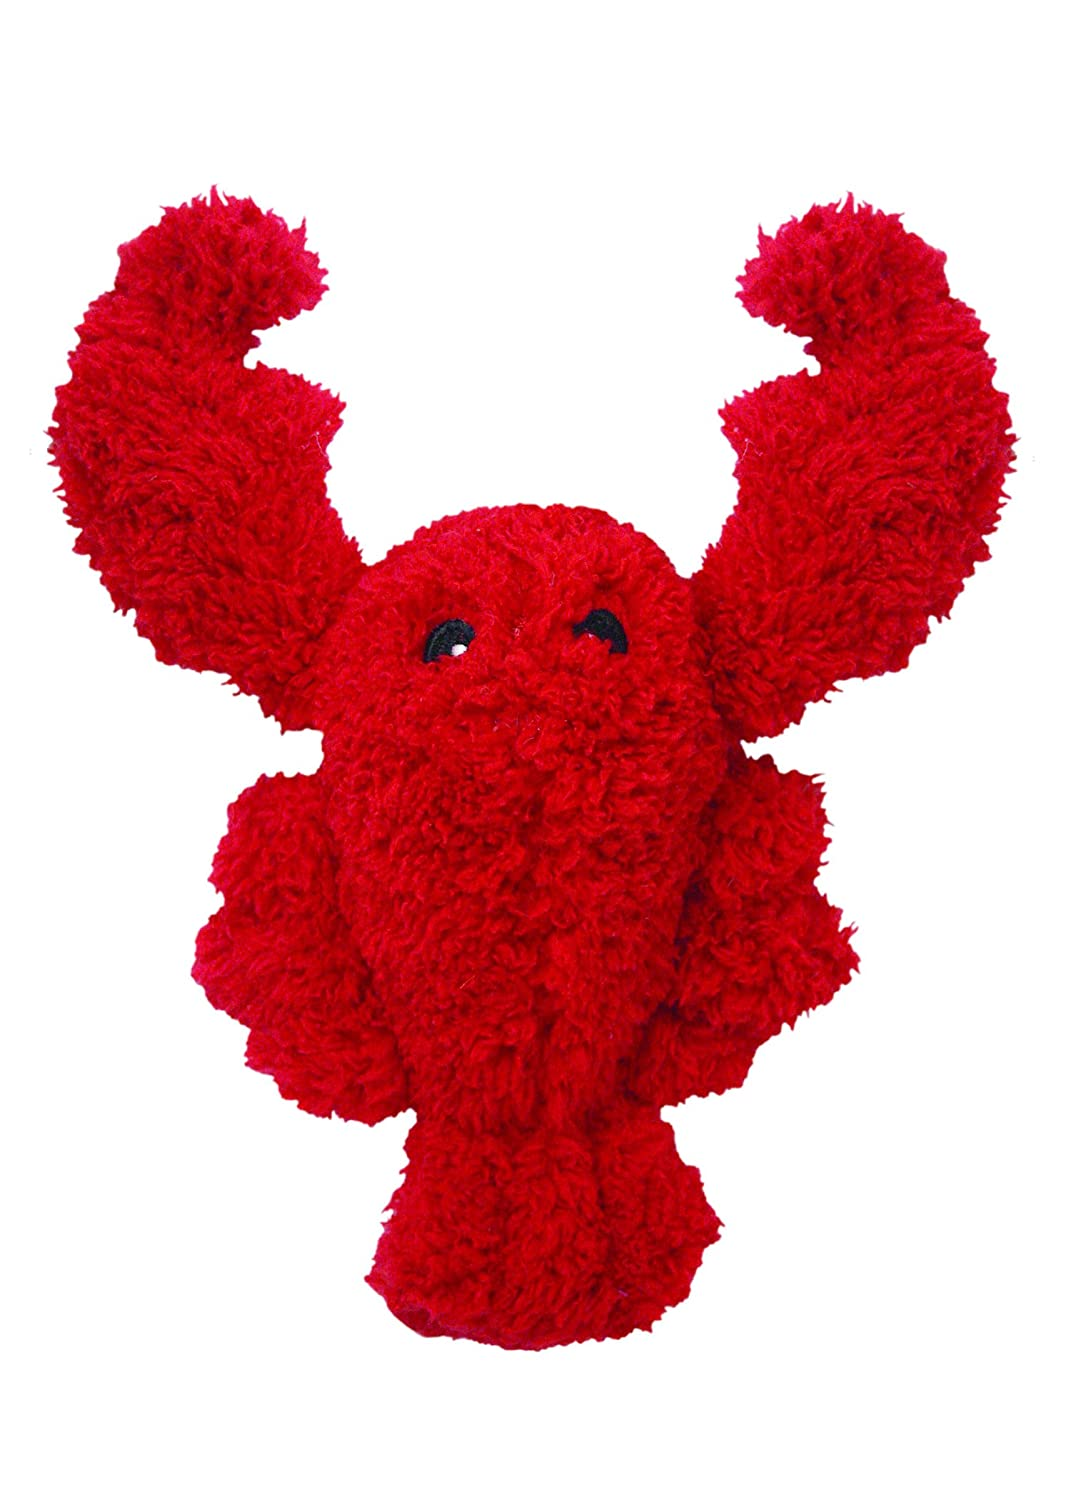 Multipet's Look Who's Talking Plush Lobster Dog Toy 7.5 Inch